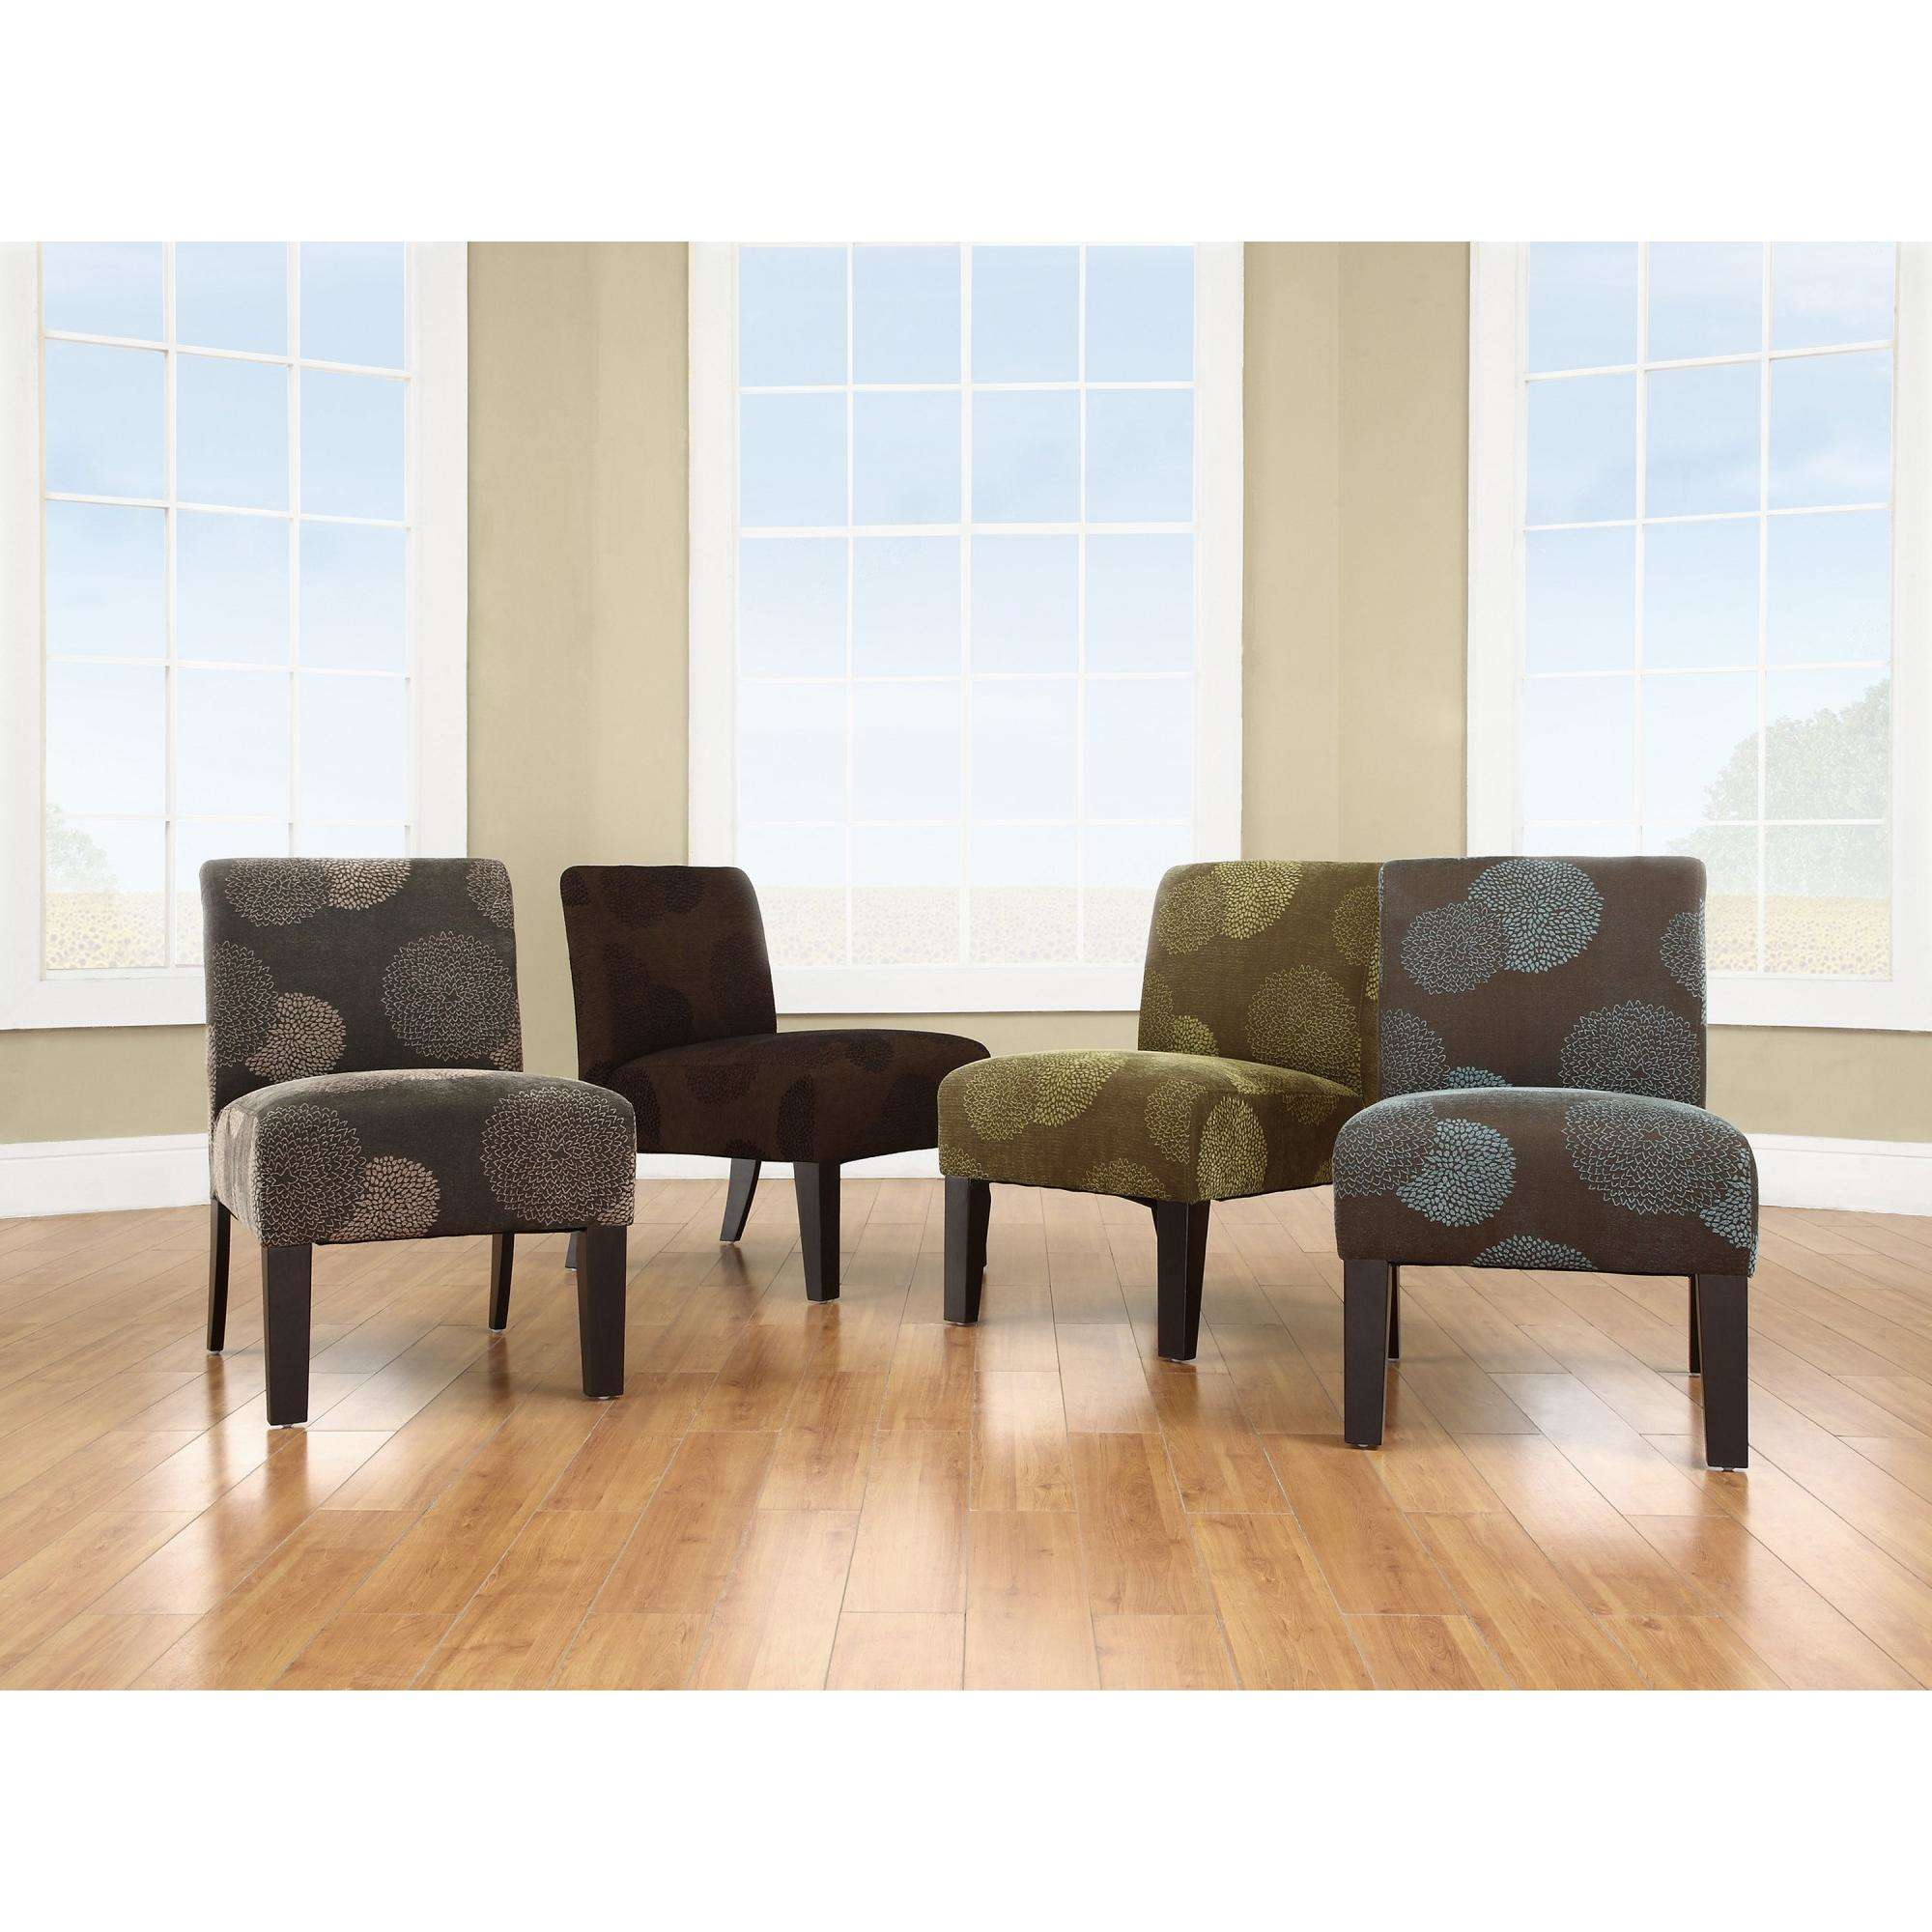 Upholstered Accent Chair Cushion Seat Sunflower Deco Living Room Home Green  New